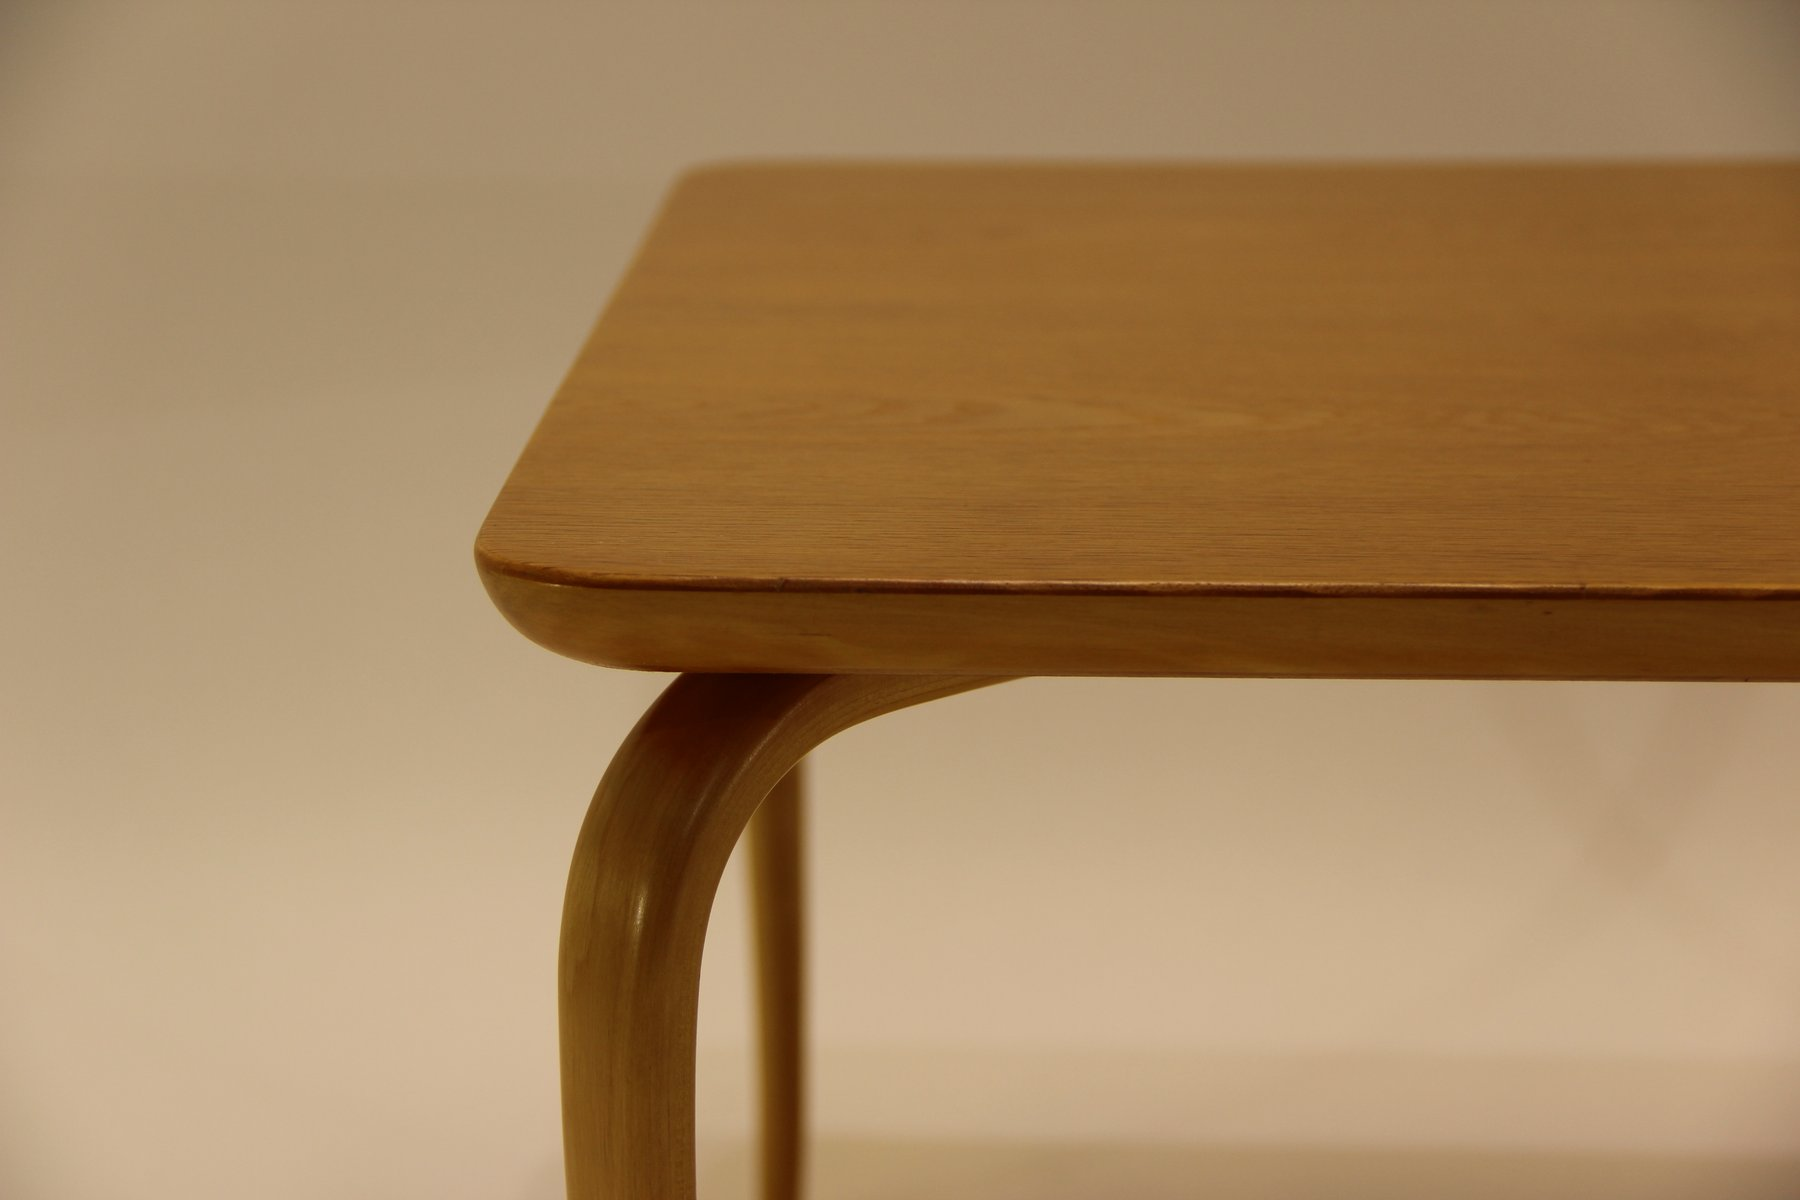 Vintage Annika Oak & Beech Coffee Table by Bruno Mathsson for Karl